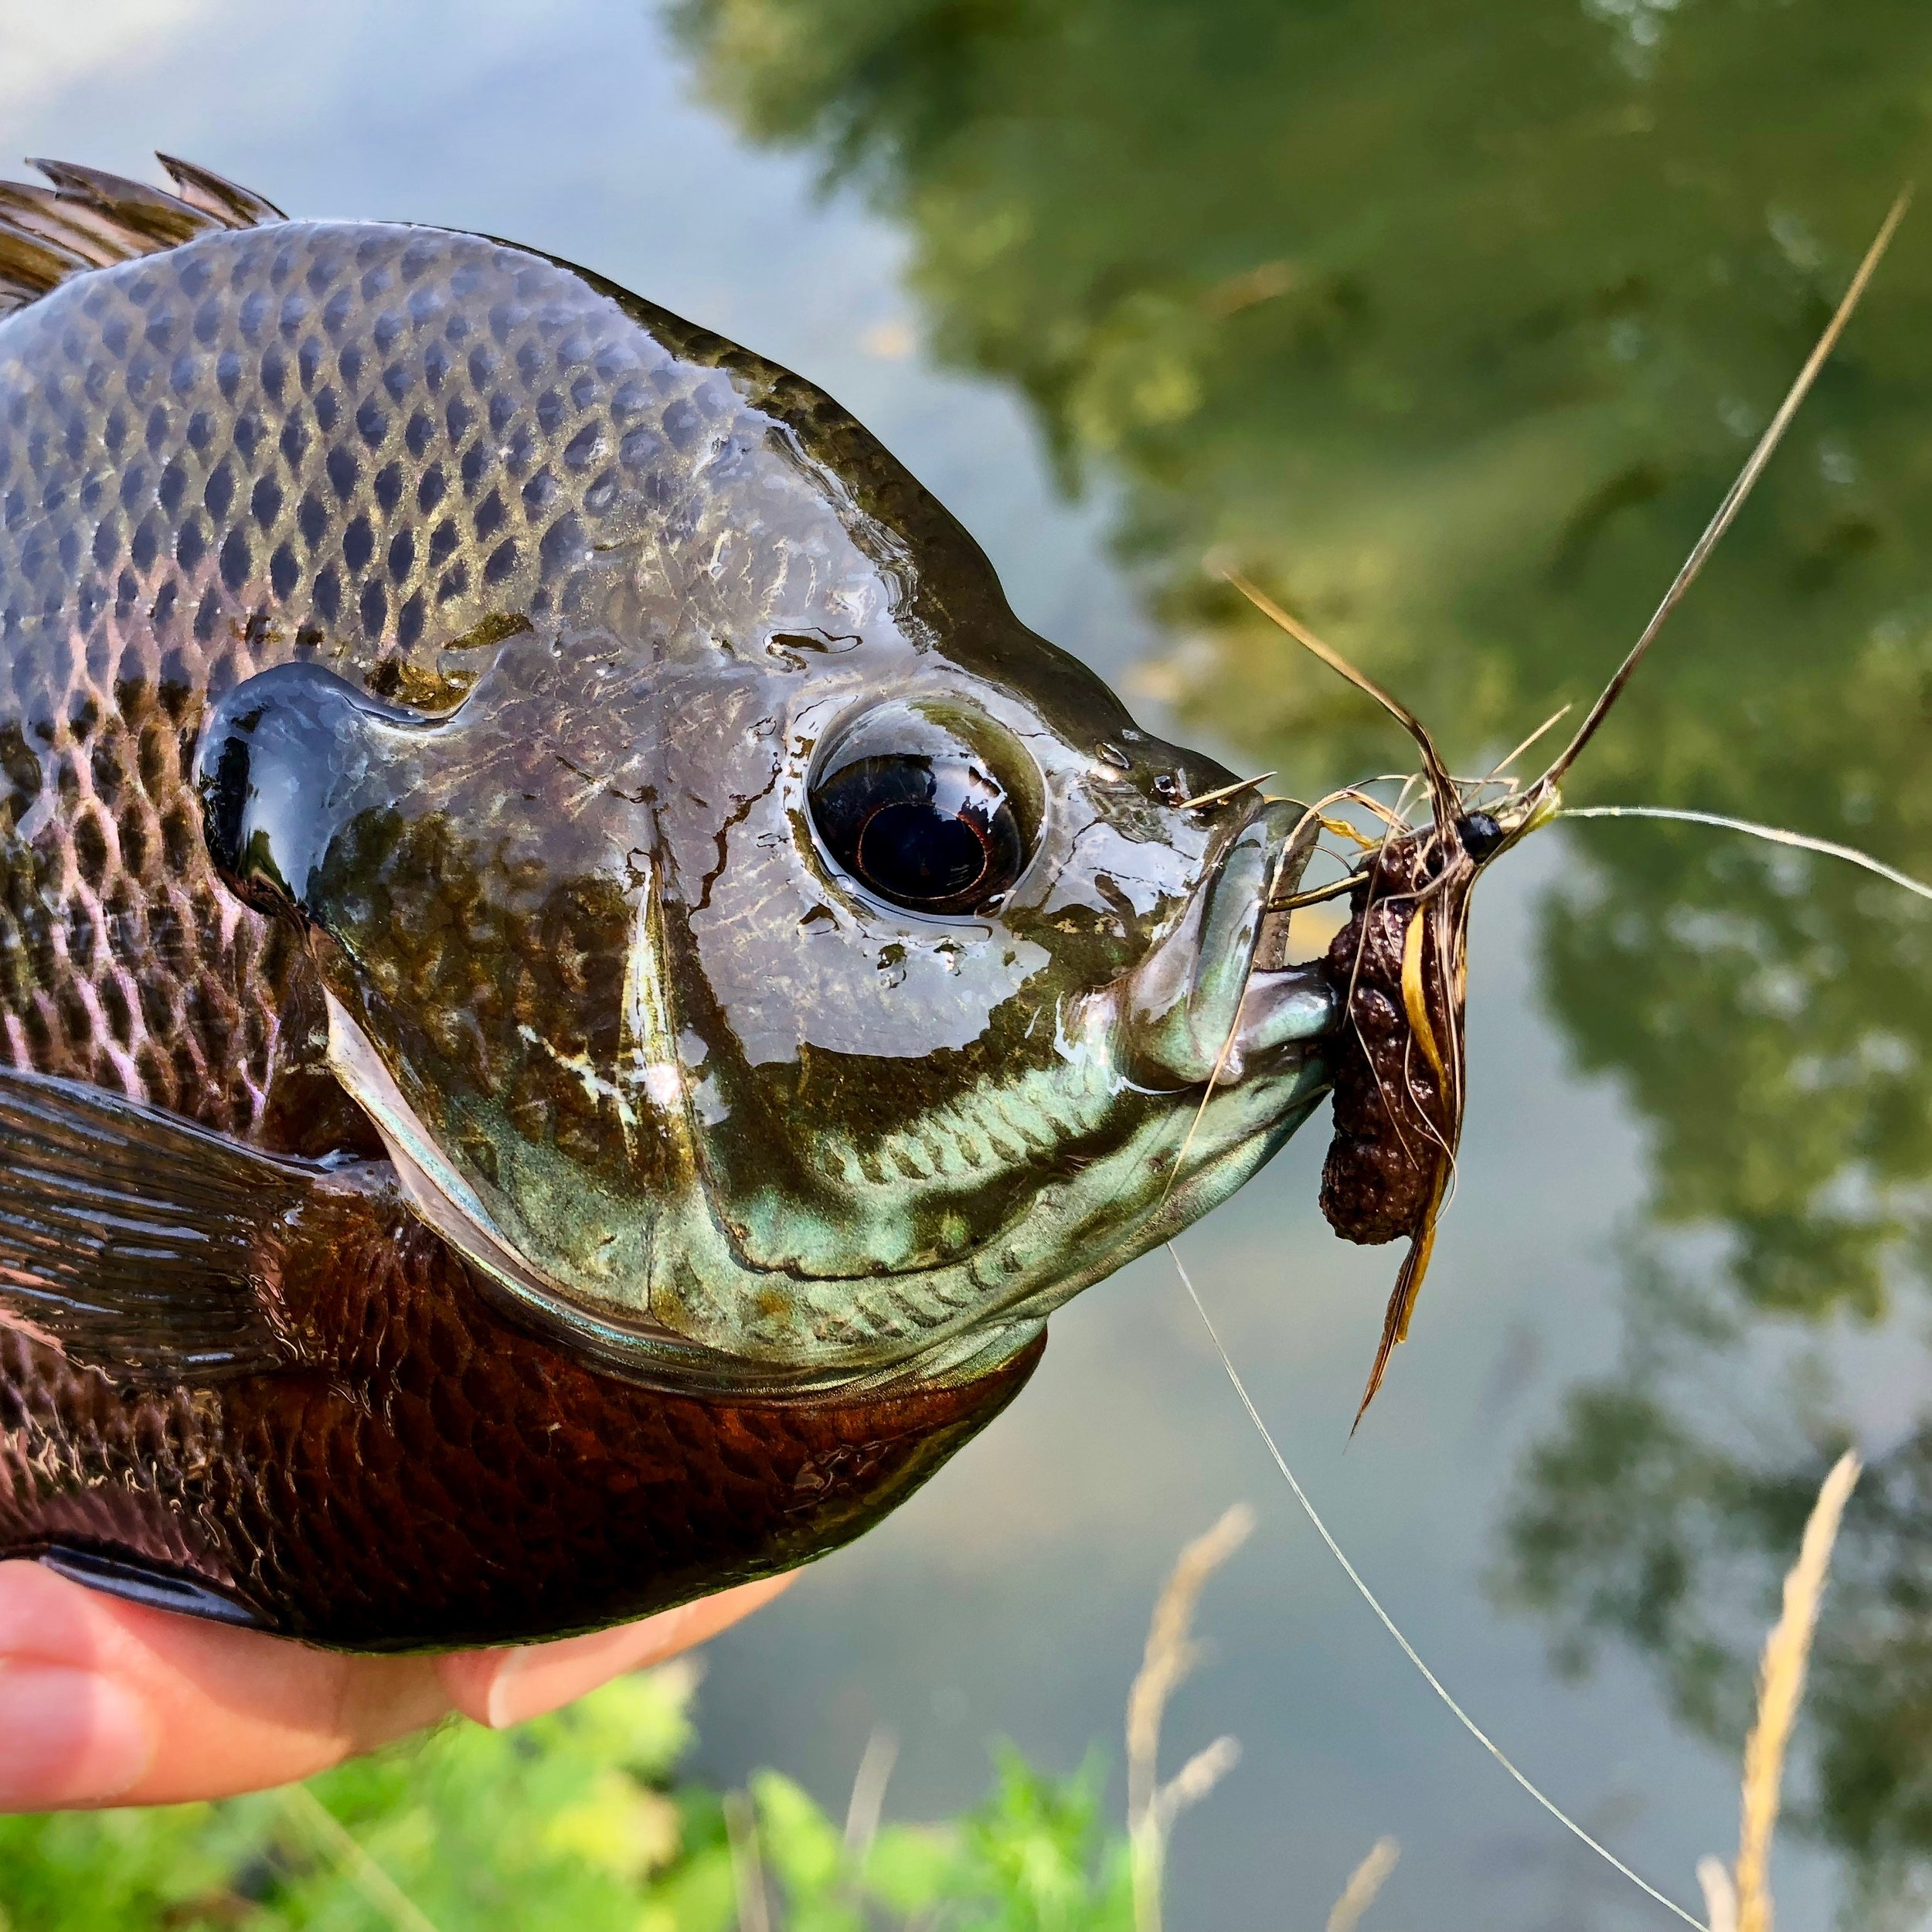 The Creature is also good choice for jumbo panfish. It is a mouthful for all but the largest fish.